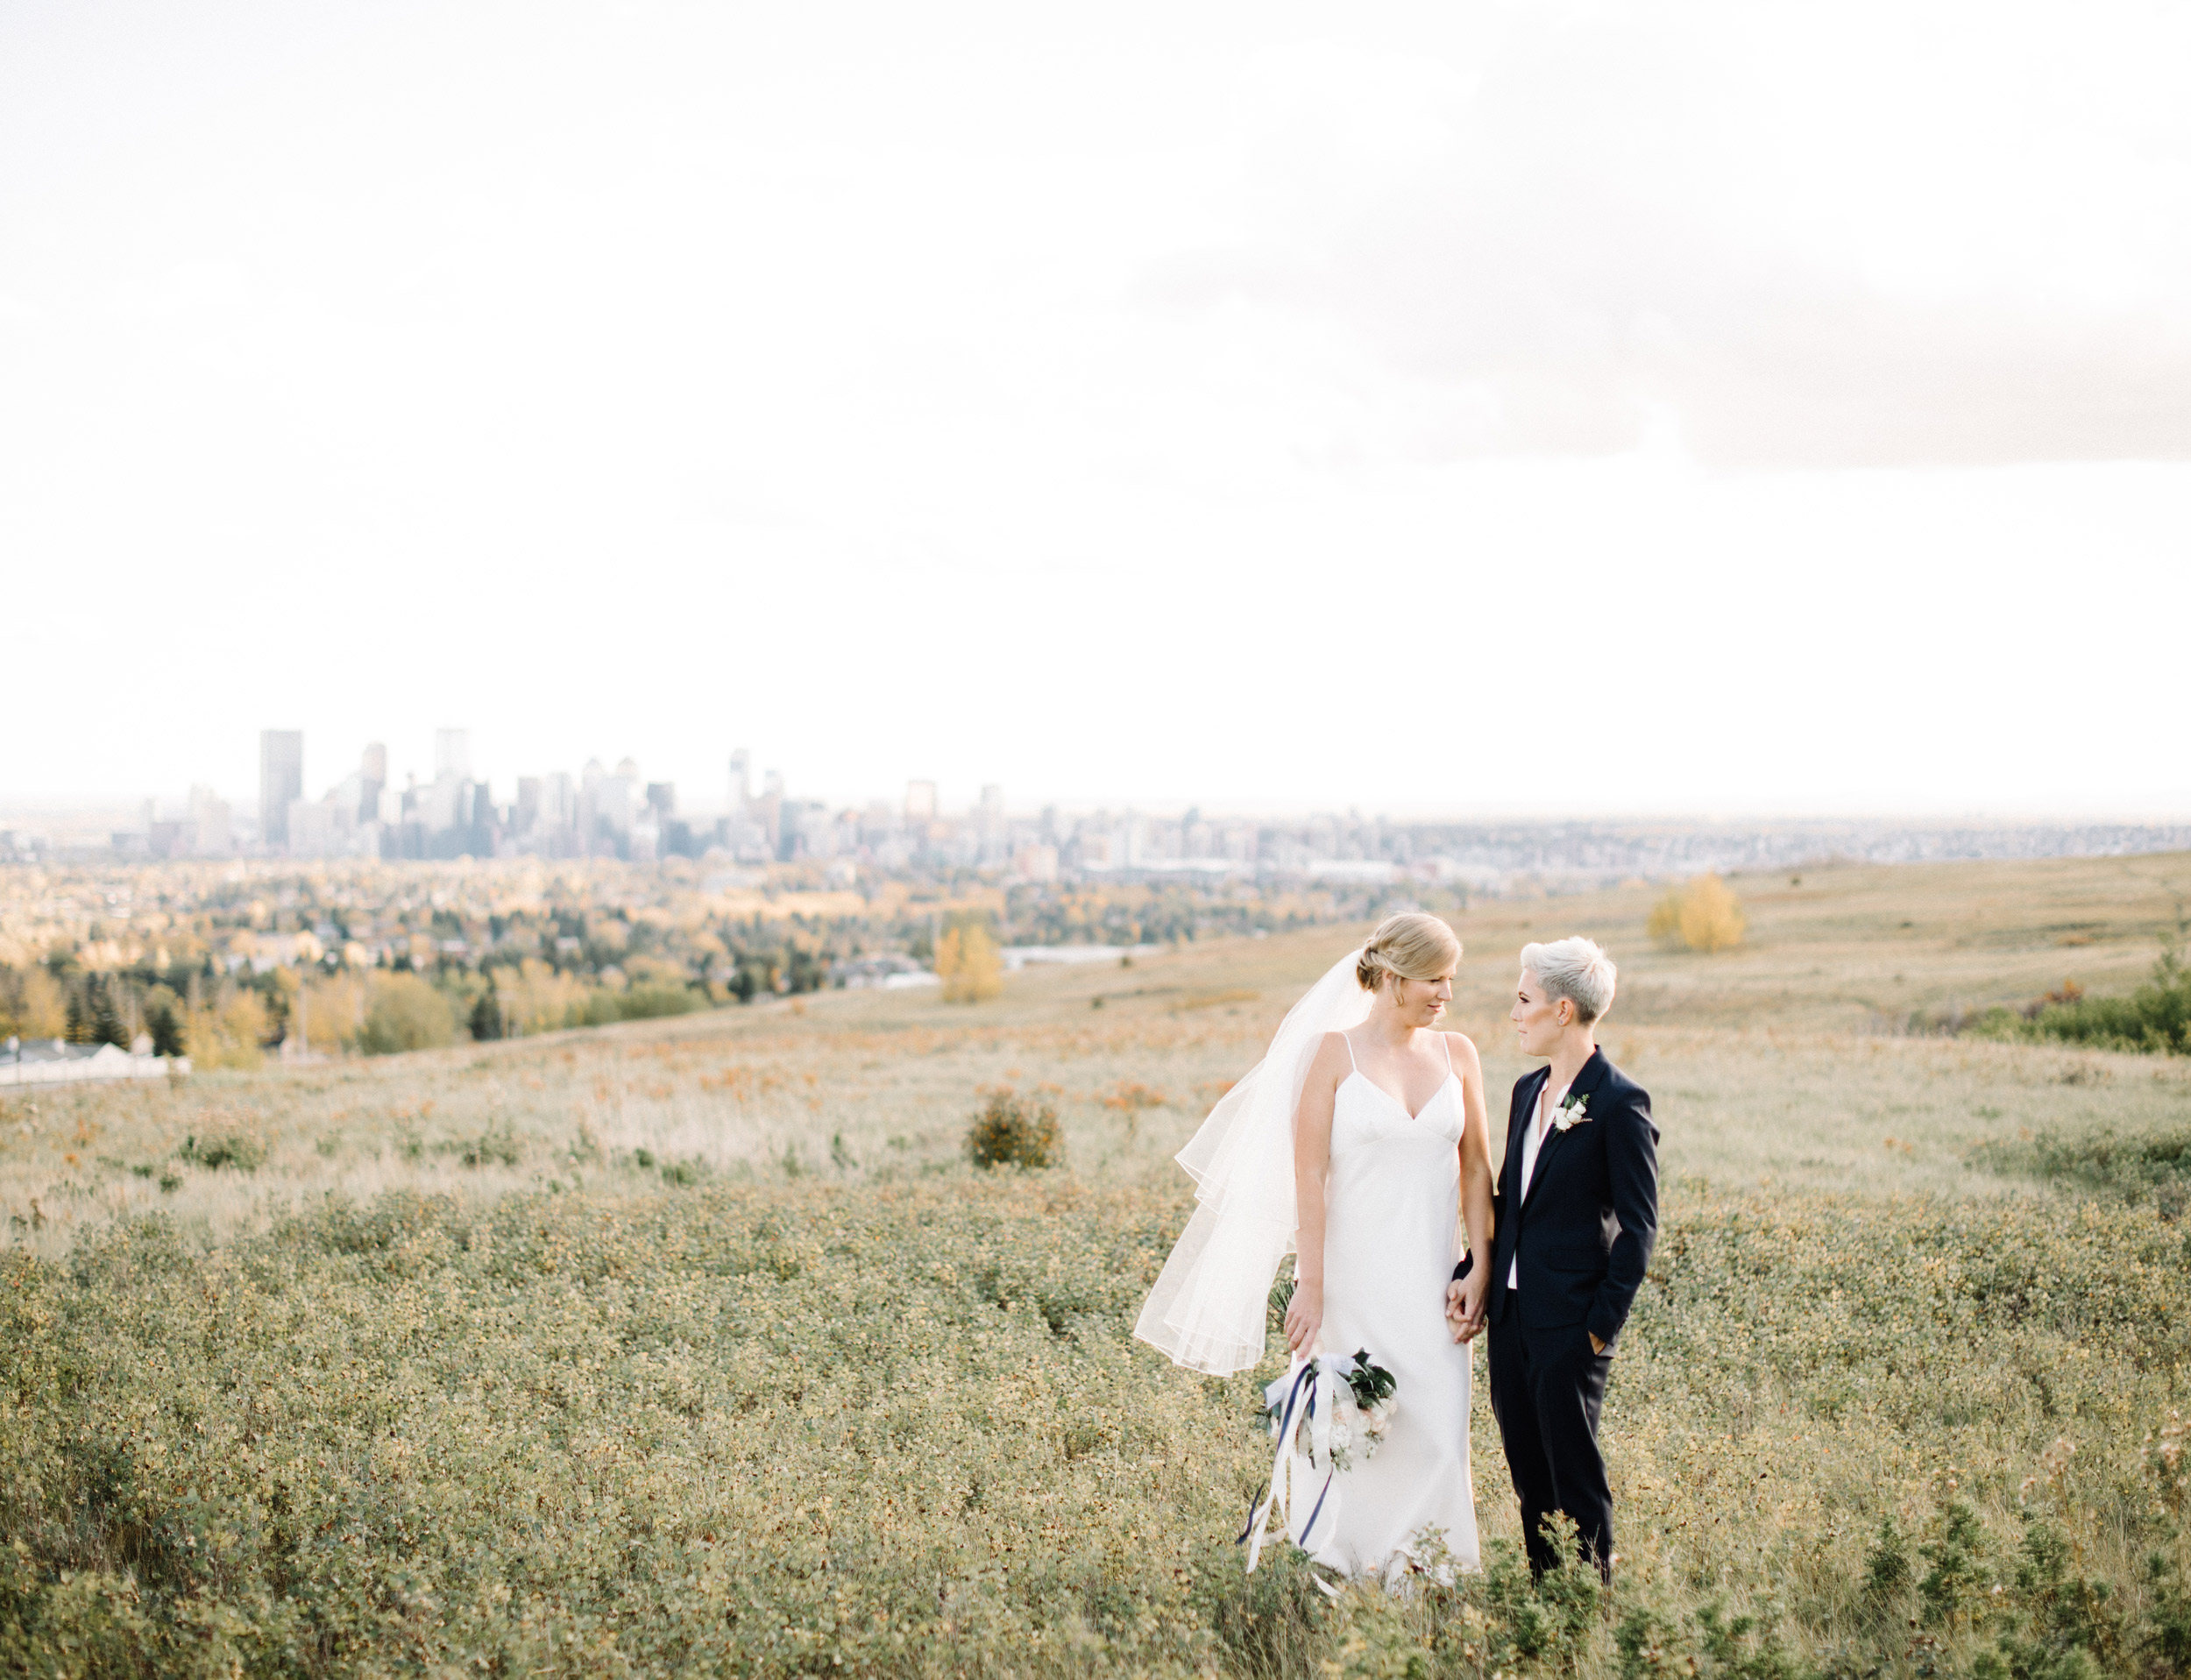 016-calgary_wedding_photographers.jpg